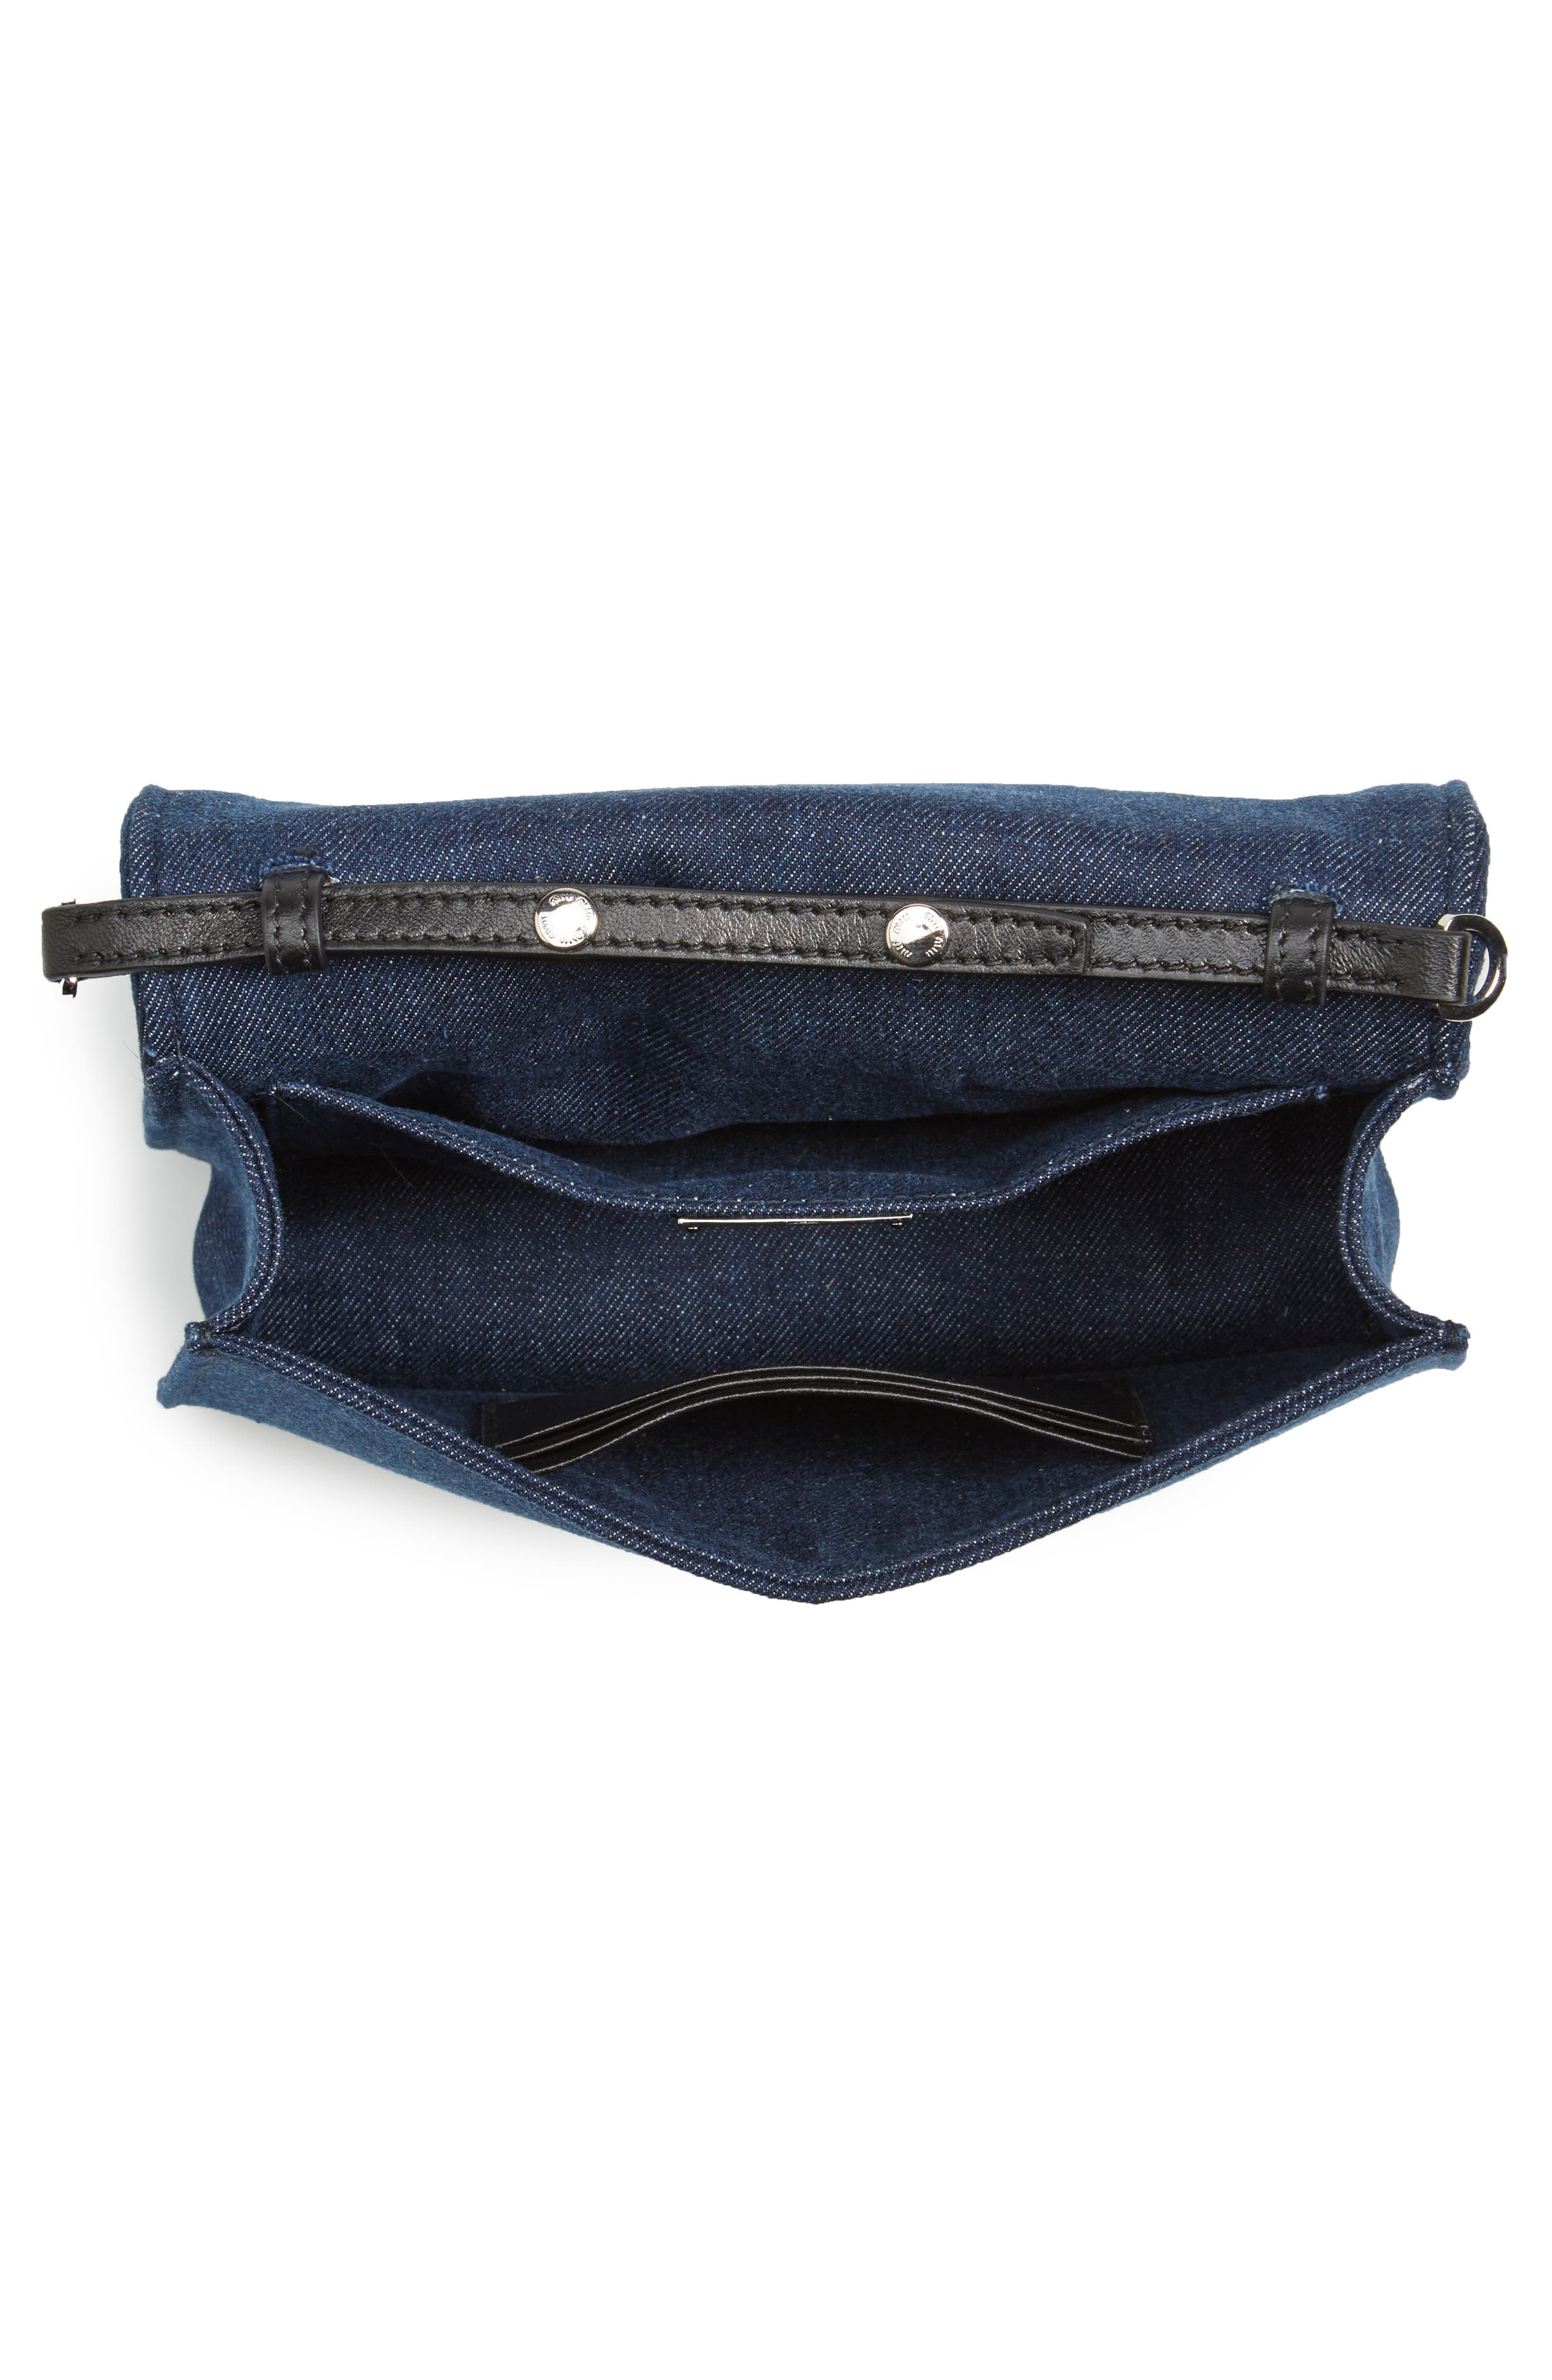 Matelassé Denim Crossbody Clutch,                             Alternate thumbnail 3, color,                             Bleu